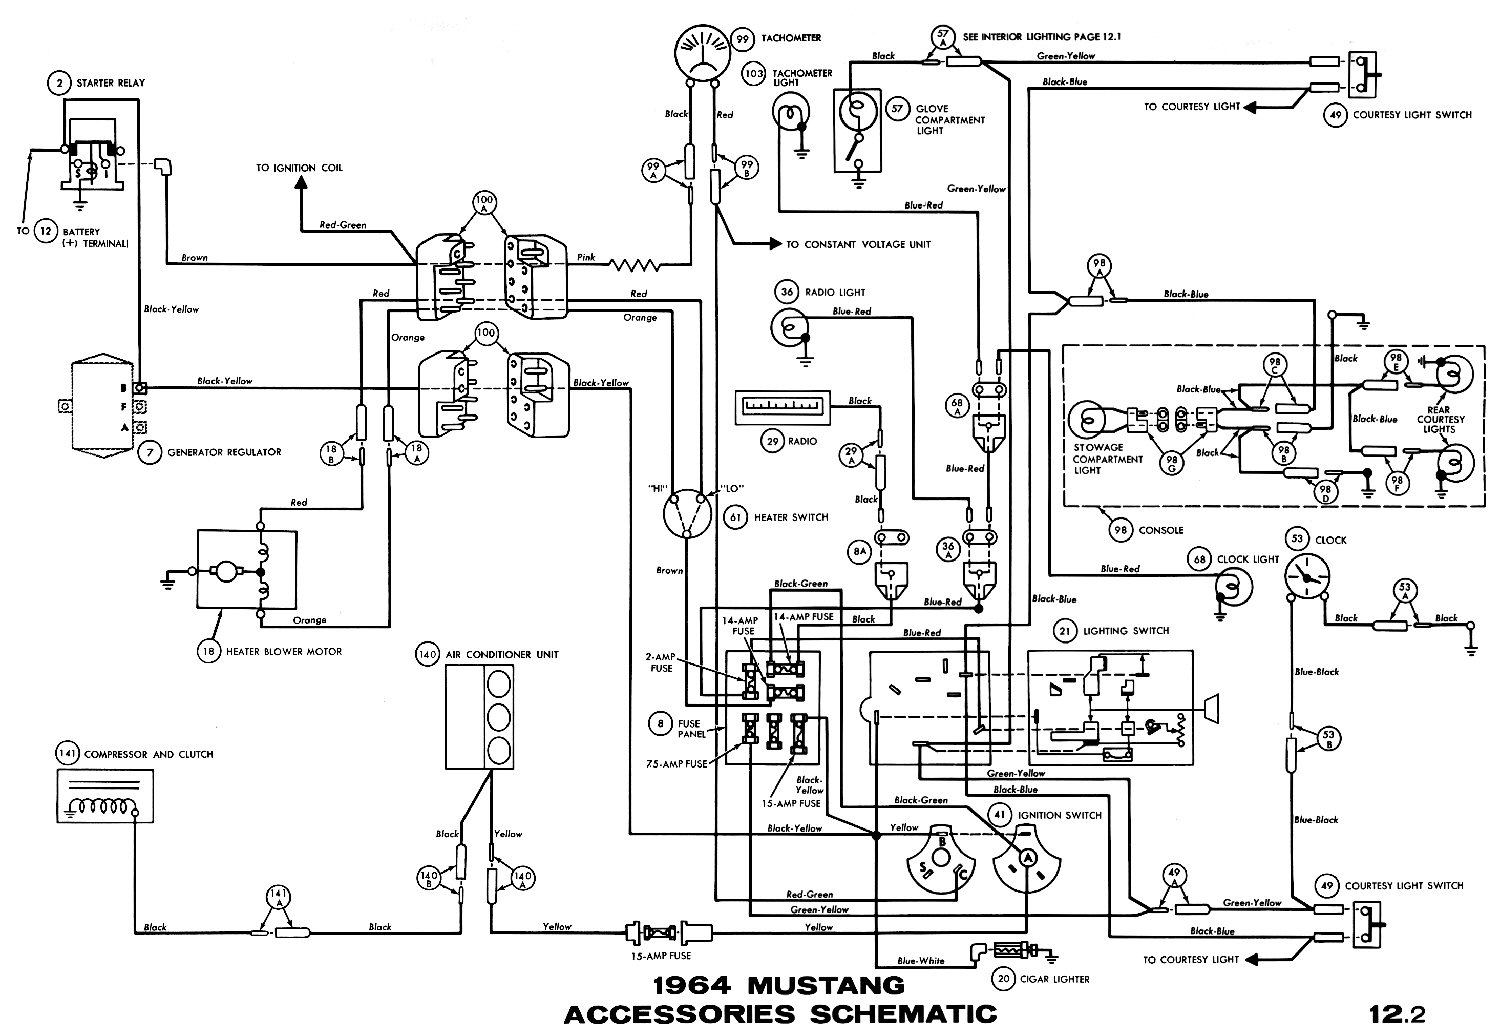 1964 mustang accessories pictorial or schematic  air conditioner